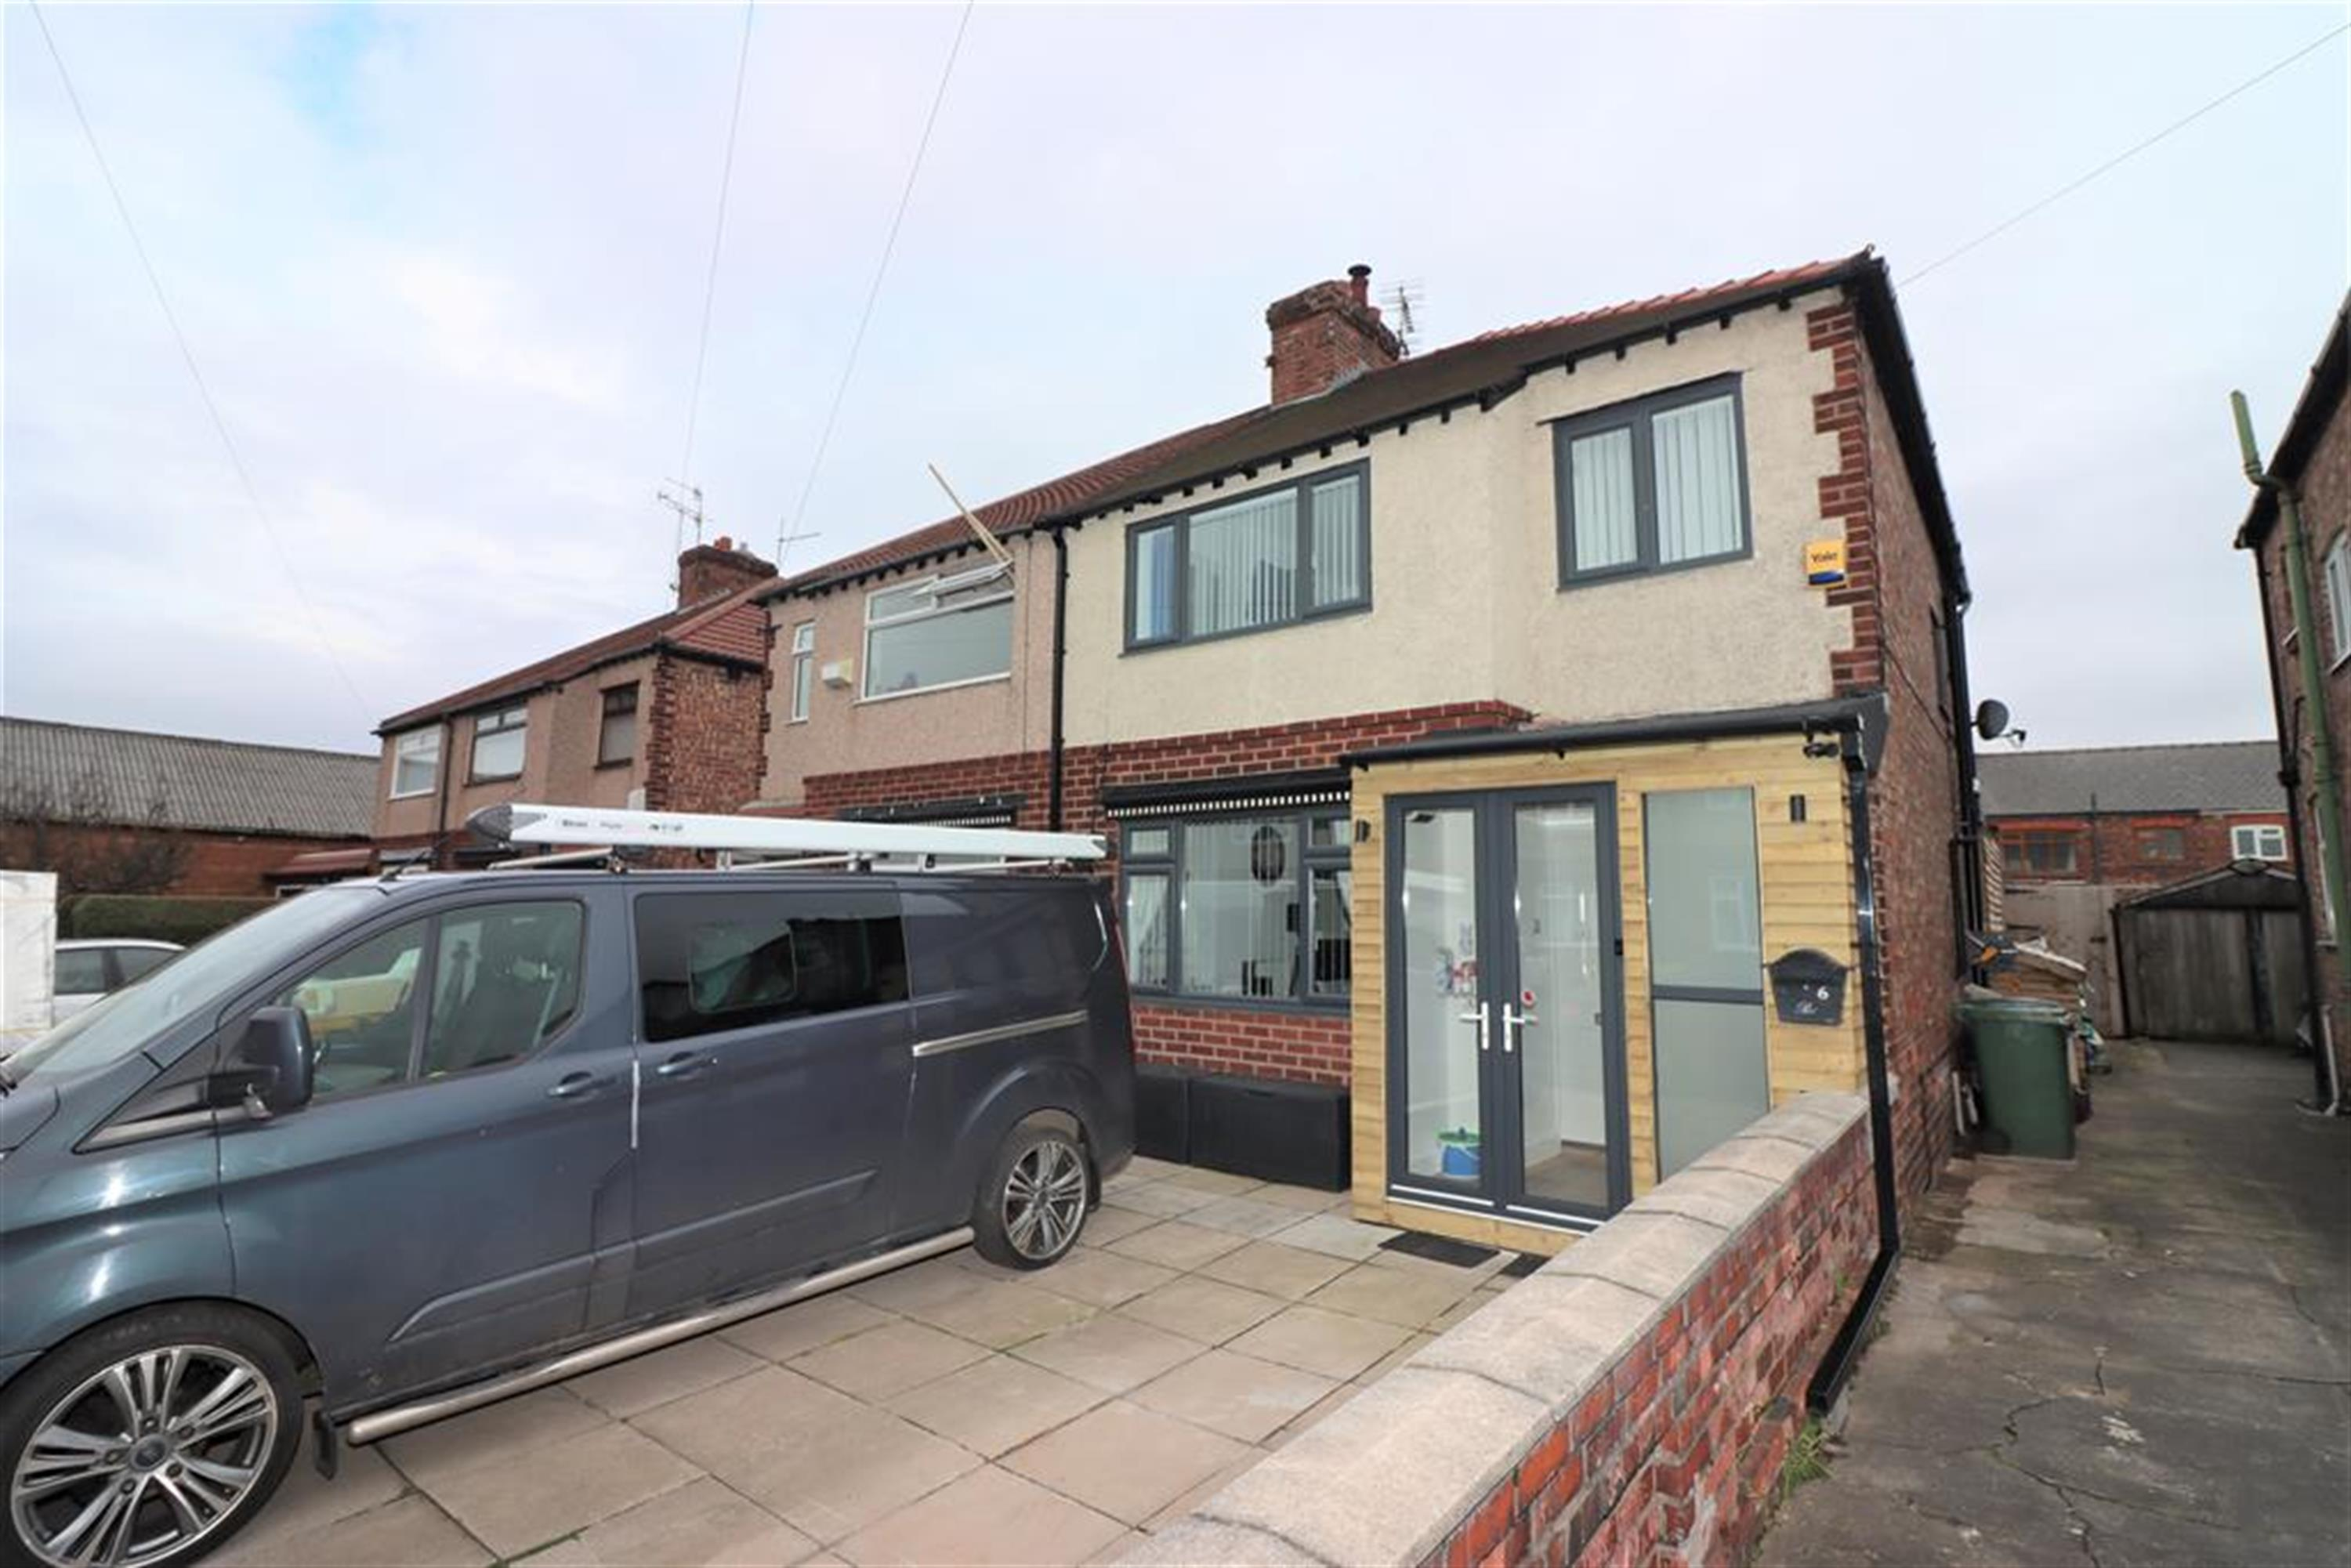 Poulton Hall Road, Wallasey, CH44 5SH